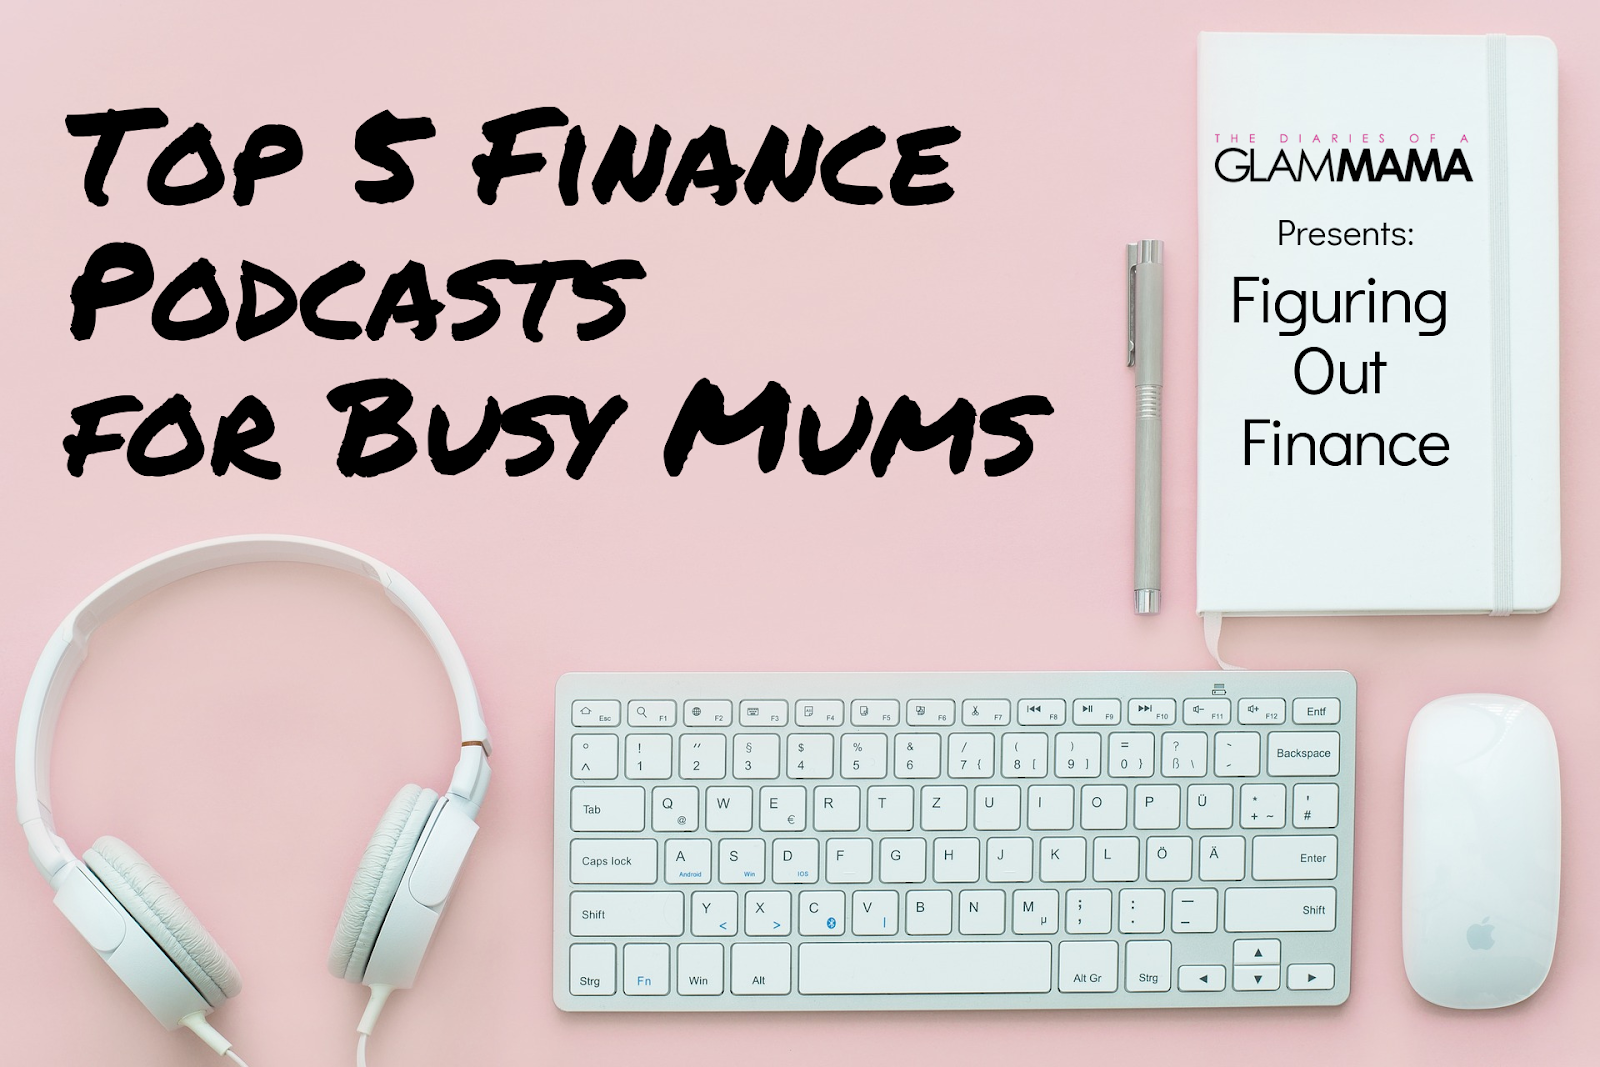 Flatlay on a pink surface, from left to right: white headphones, white mac keyboard, white apple mouse, and white notebook with text in black Glam Mama Presents Figuring Out Finance.Top left of entire image: Text in black: Top 5 Podcasts For Busy Mums.